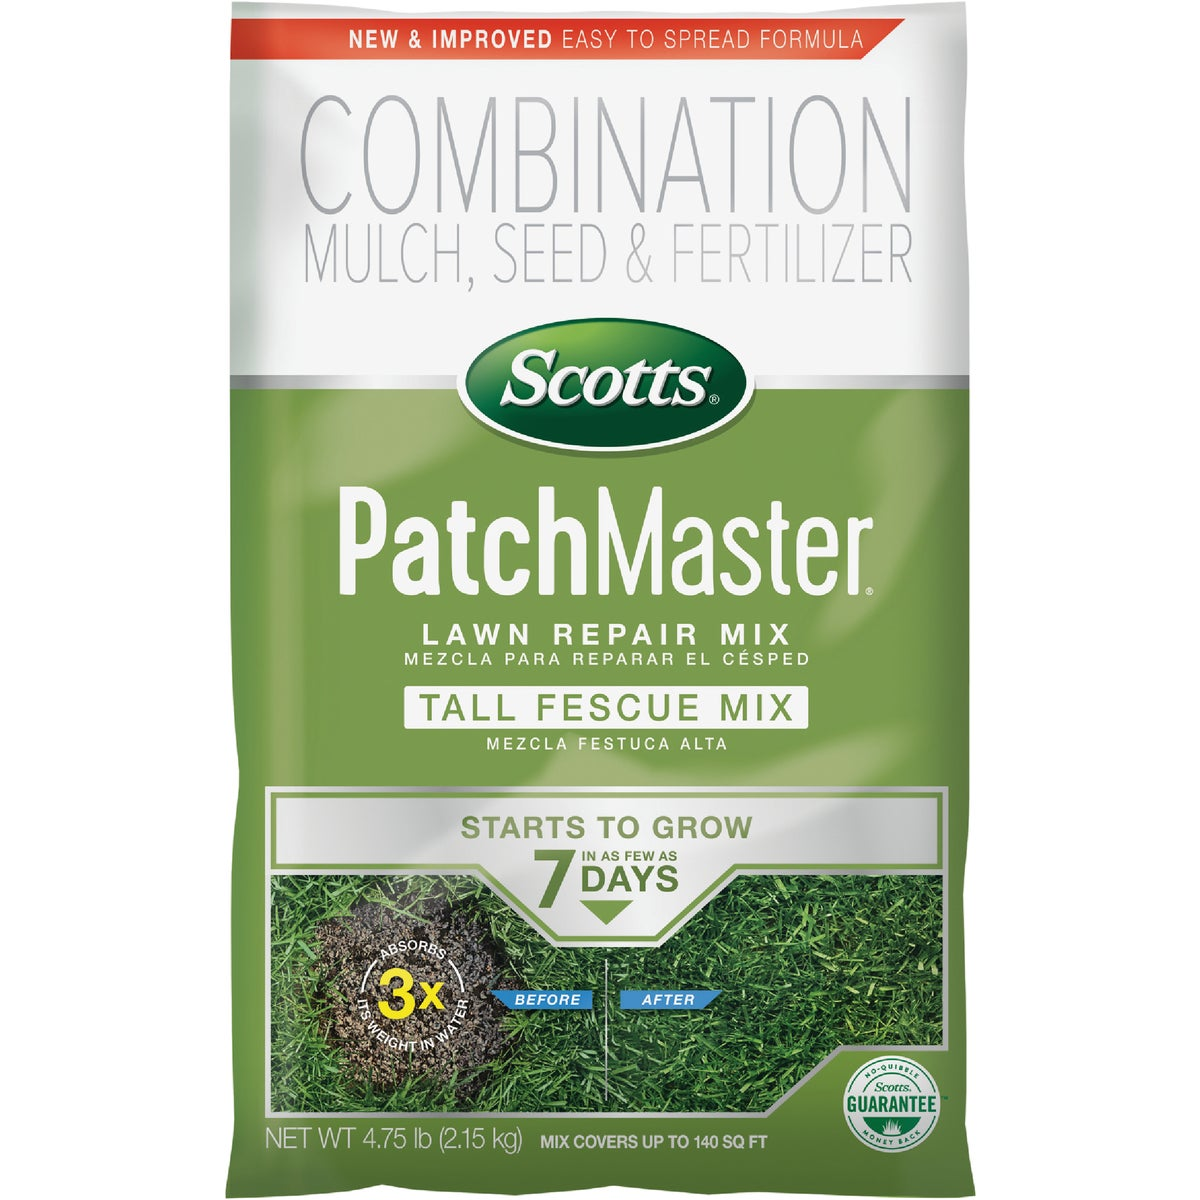 The Scotts Co. 5LB FESCUE PATCHMASTER 14950